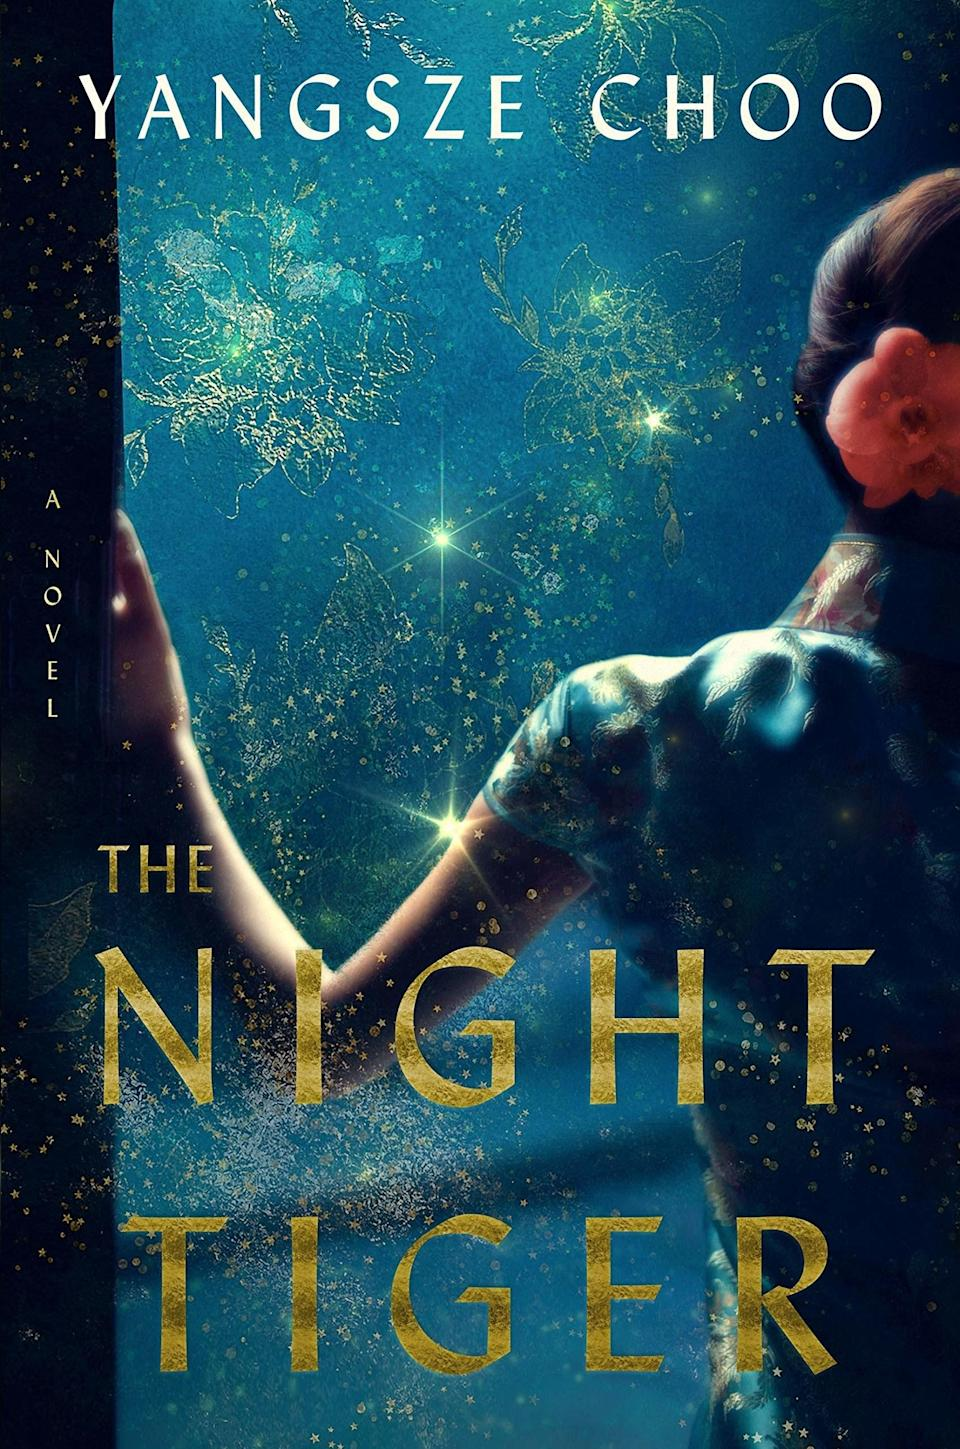 """Set in the 1930s in Malaysia, <em>The Night Tiger</em> opens when 11-year-old houseboy Ren discovers his master has just died. The master's final wish was for Ren to find the man's finger—which he'd lost years before in an accident—so it can be buried with him. If the boy fails to find it, his master will be cursed and his soul will forever wander the earth. Across the district, Ji Lin, an apprentice dressmaker and dance hall girl by night, comes across an item that one of her dance partners has left behind, which sends her on her own adventure. Ren's and Ji Lin's paths soon crisscross as they embark on their journeys. It's a book for fans of <a href=""""https://www.isabelallende.com/"""" rel=""""nofollow noopener"""" target=""""_blank"""" data-ylk=""""slk:Isabel Allende"""" class=""""link rapid-noclick-resp"""">Isabel Allende</a> and for those who love a murder mystery with a beautiful backdrop."""